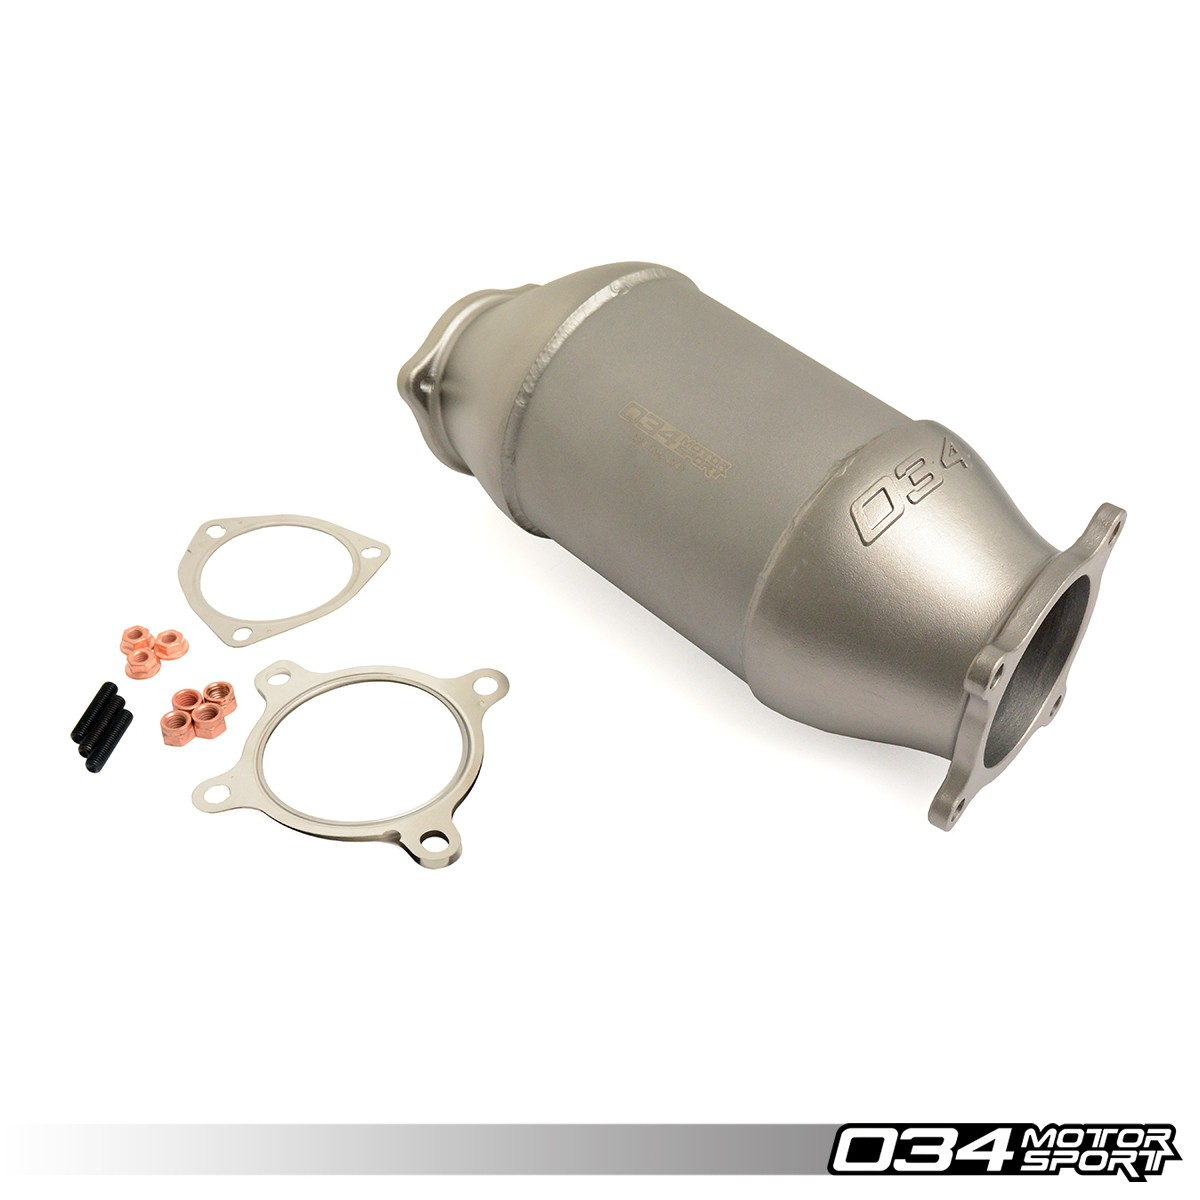 Cast Stainless Steel Racing Catalyst, B9 Audi A4/A5 & Allroad 2.0 TFSI | 034-105-4043